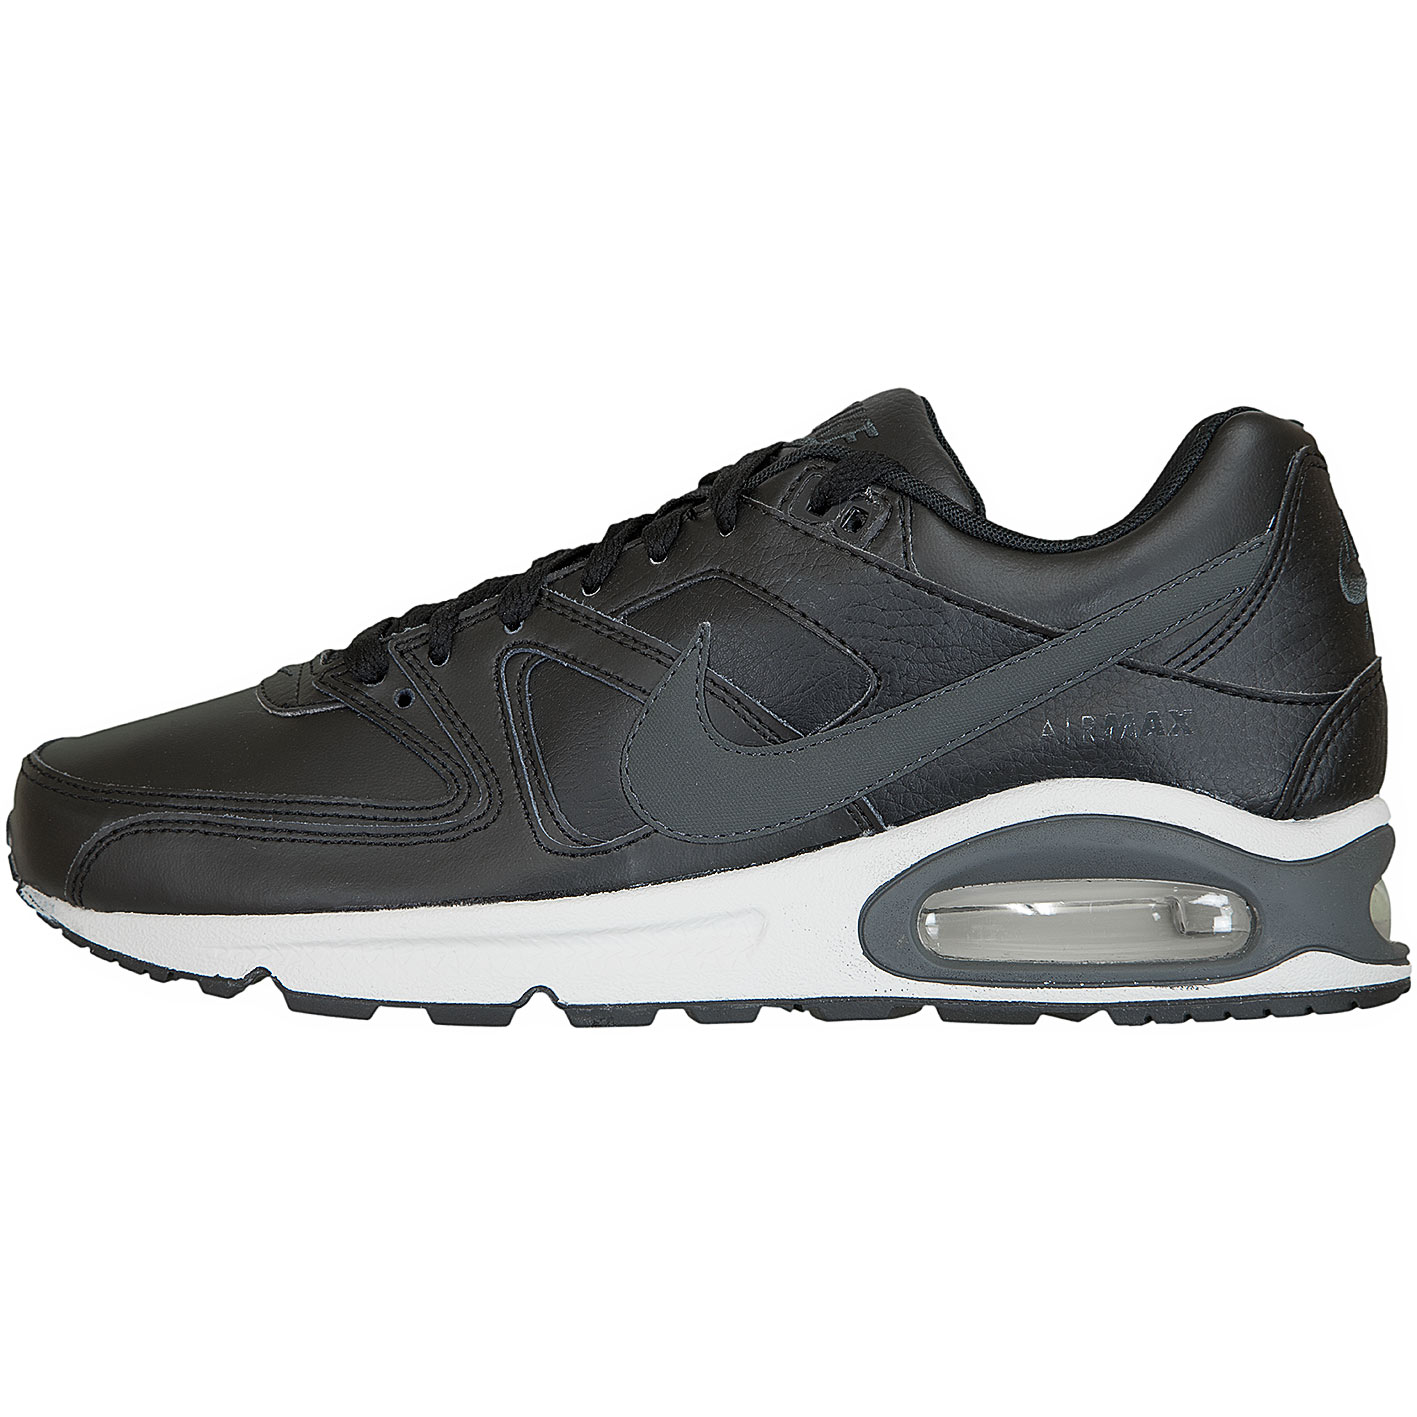 e75014a2b6dbf ☆ Nike Sneaker Air Max Command Leather schwarz anthrazit - hier ...